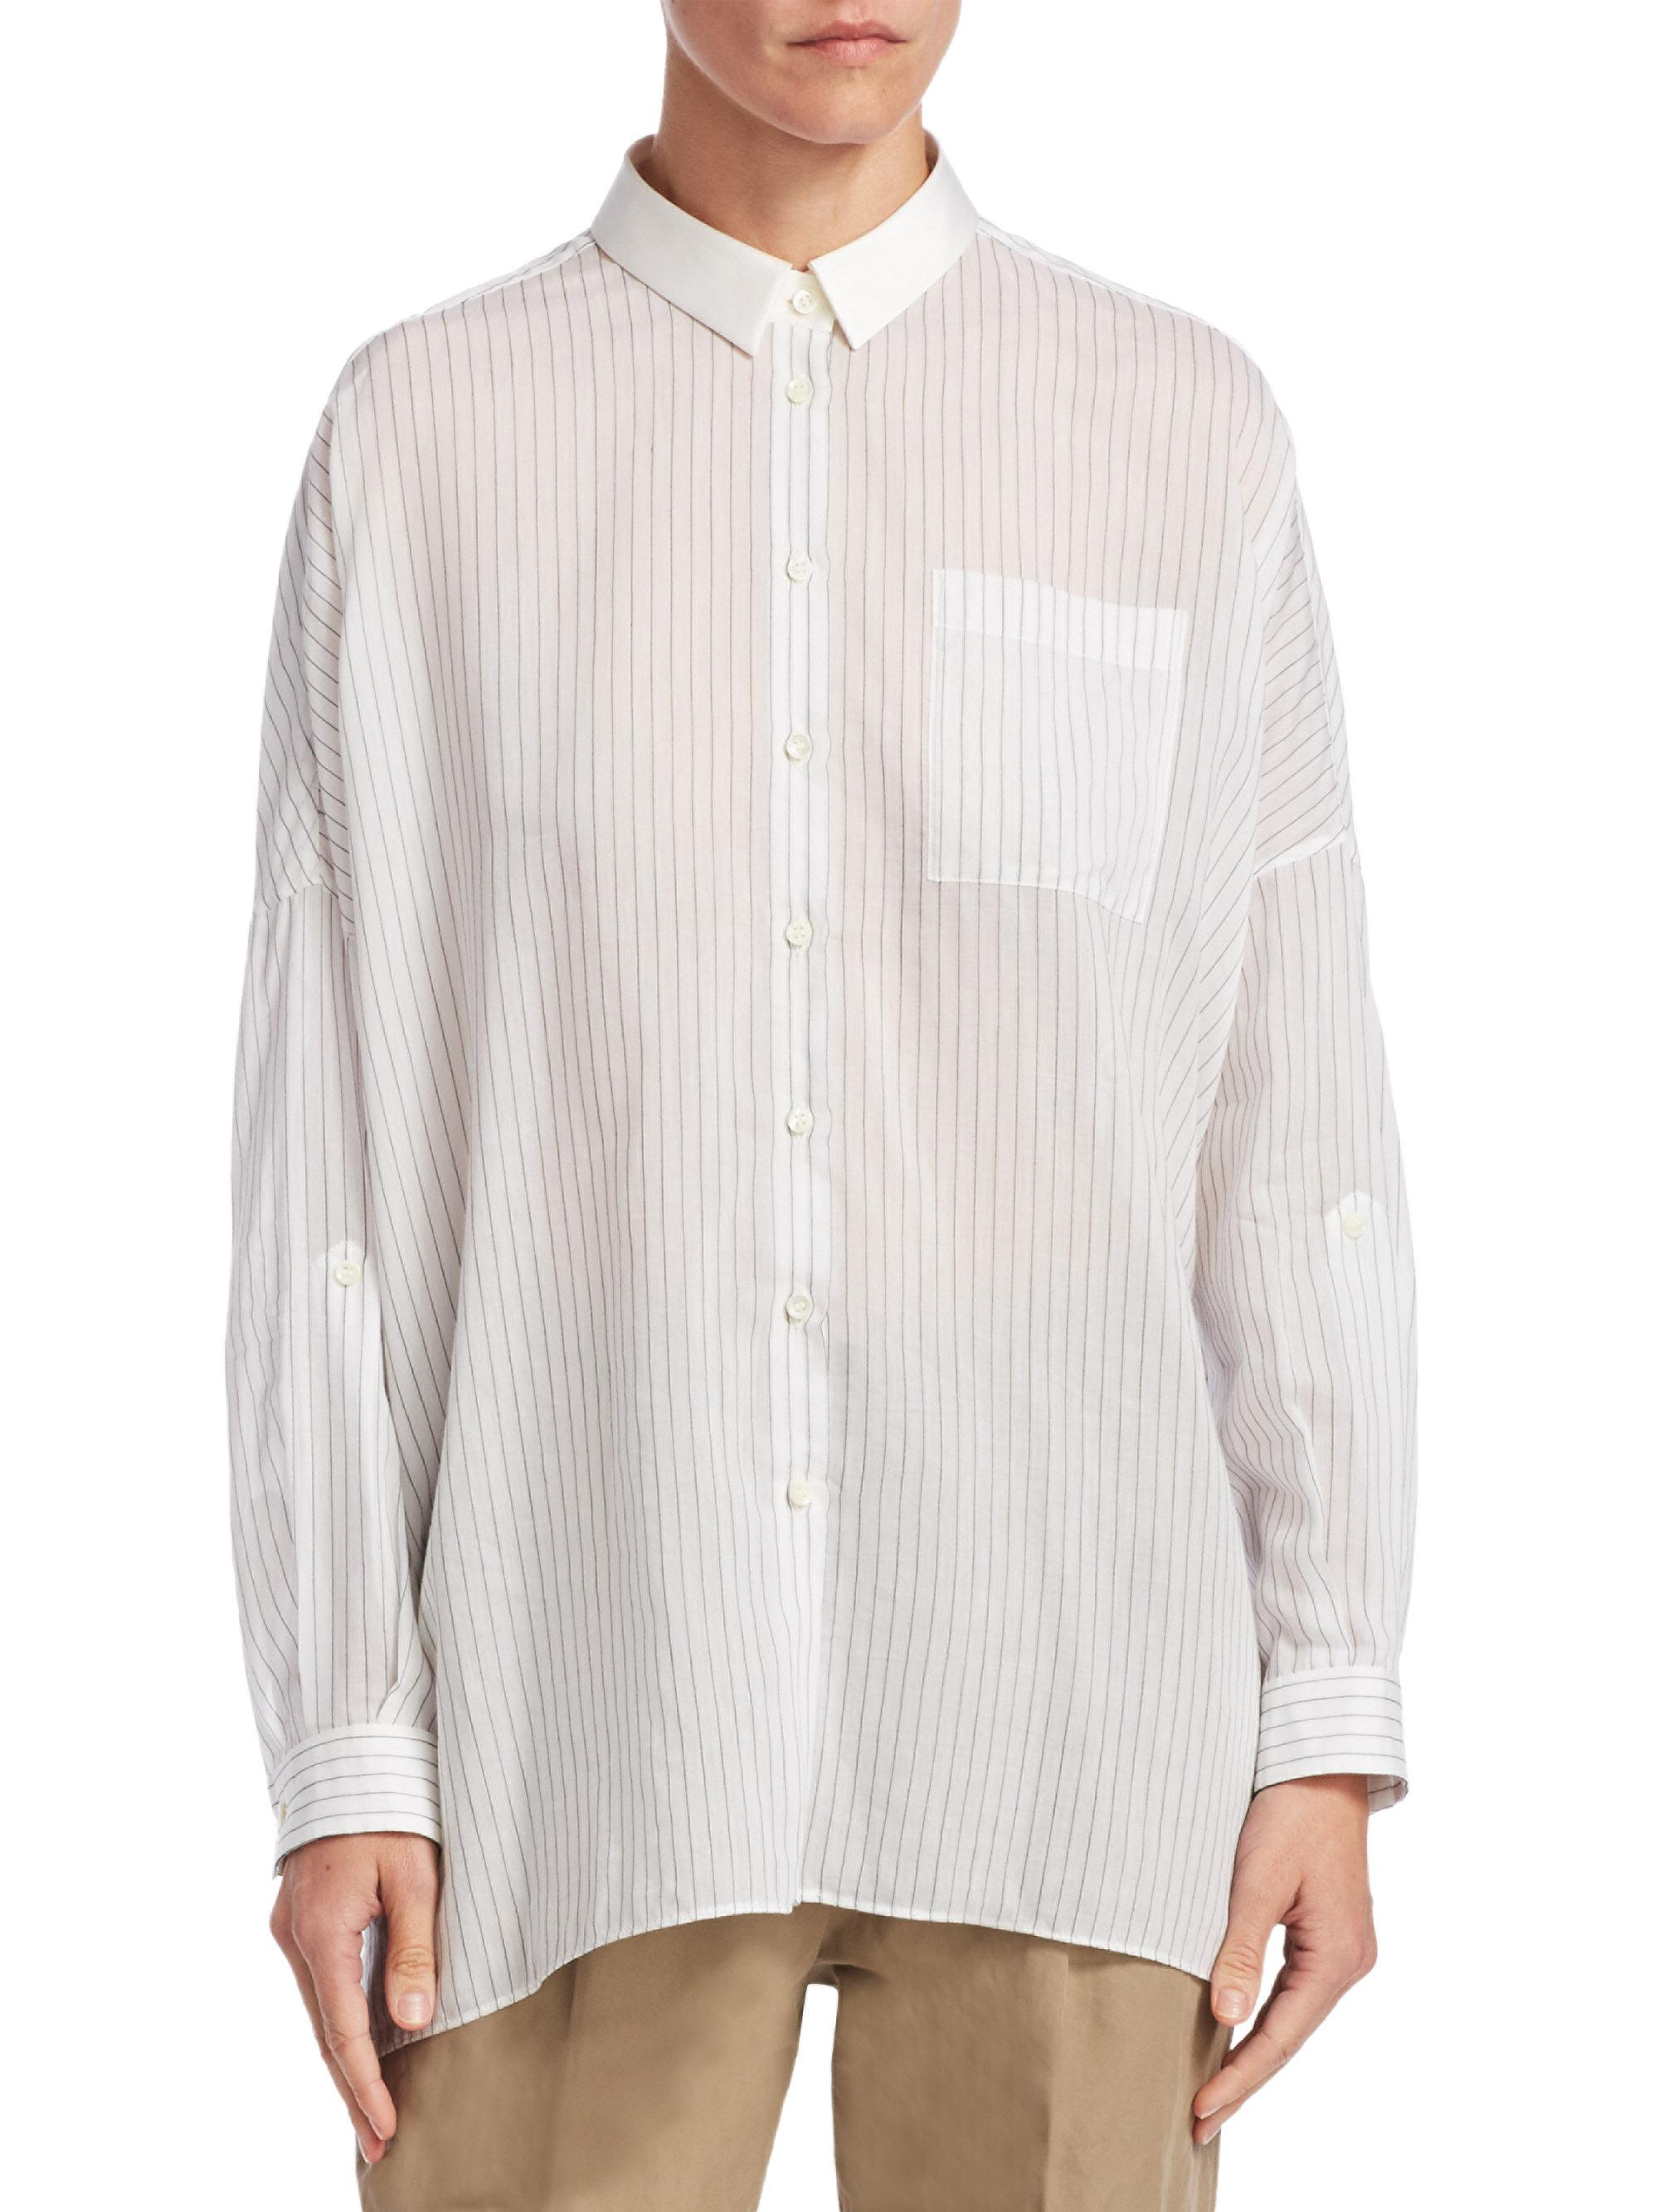 Discount Looking For Discount Comfortable Oversized striped cotton shirt Brunello Cucinelli Cheap Price Outlet Sale Cheap Fashionable Discount Footlocker Pictures 3SeMUgR941